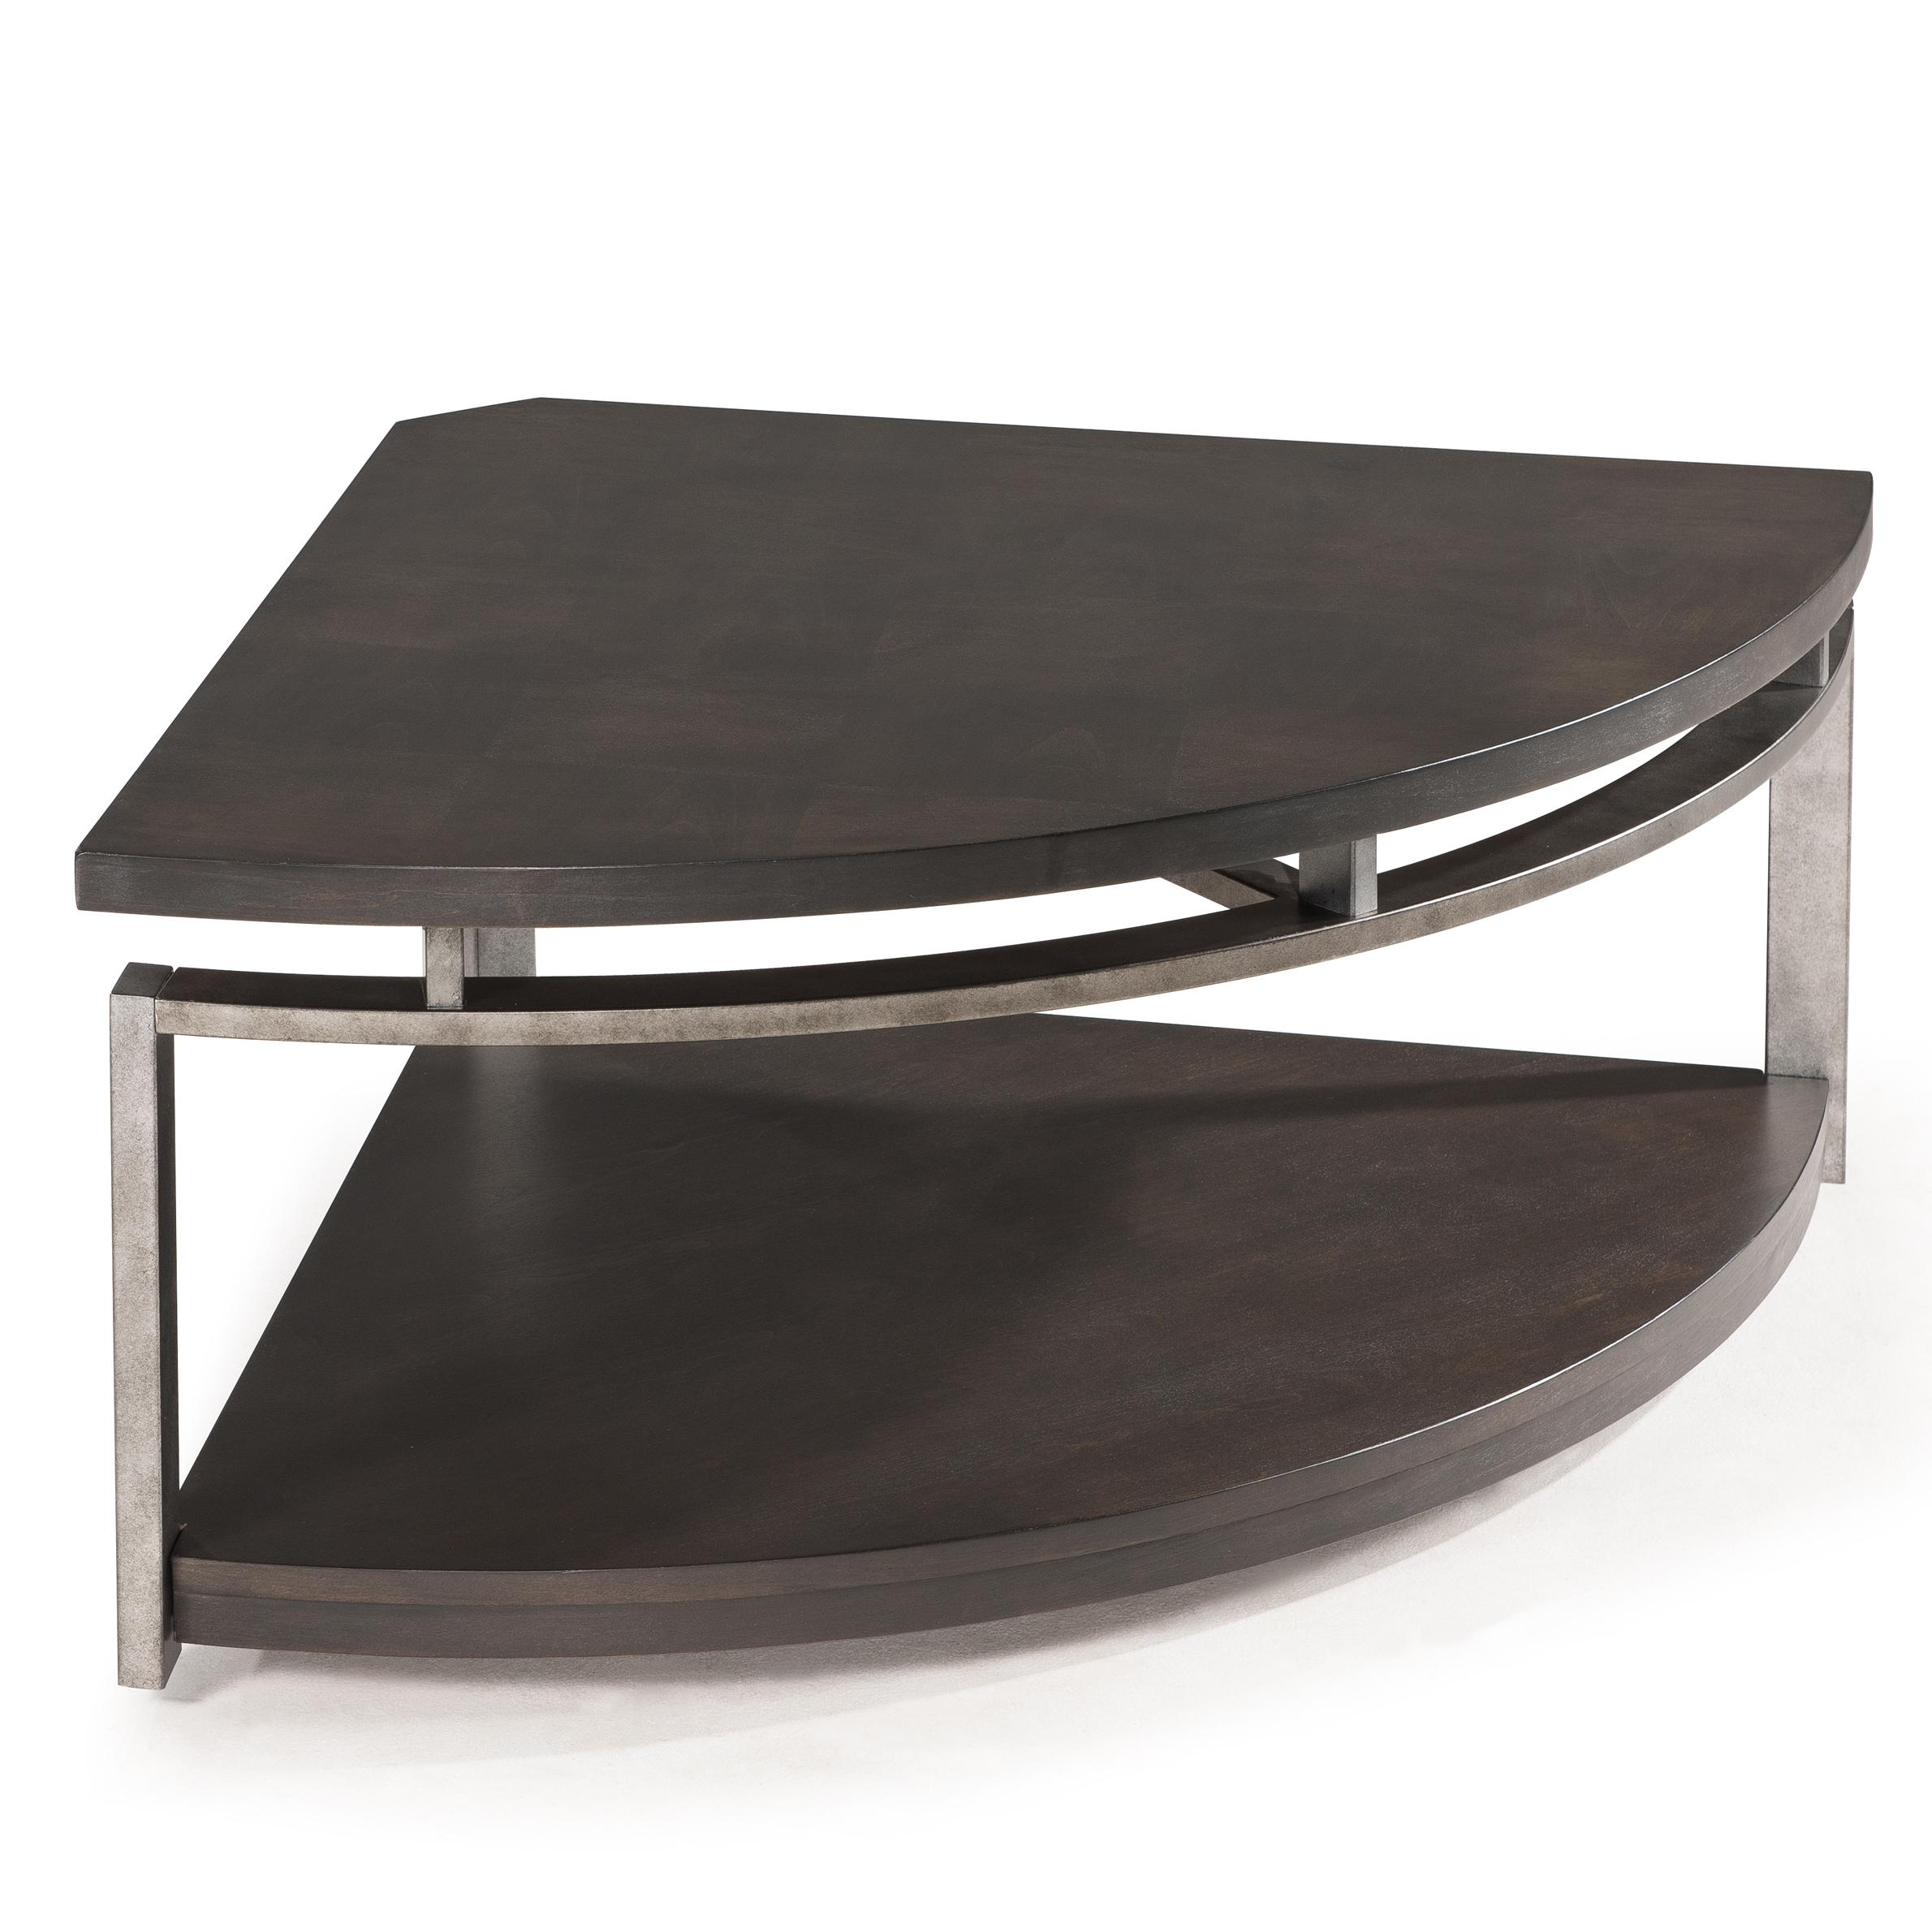 Contemporary Pie shaped Cocktail Table with Casters by Magnussen